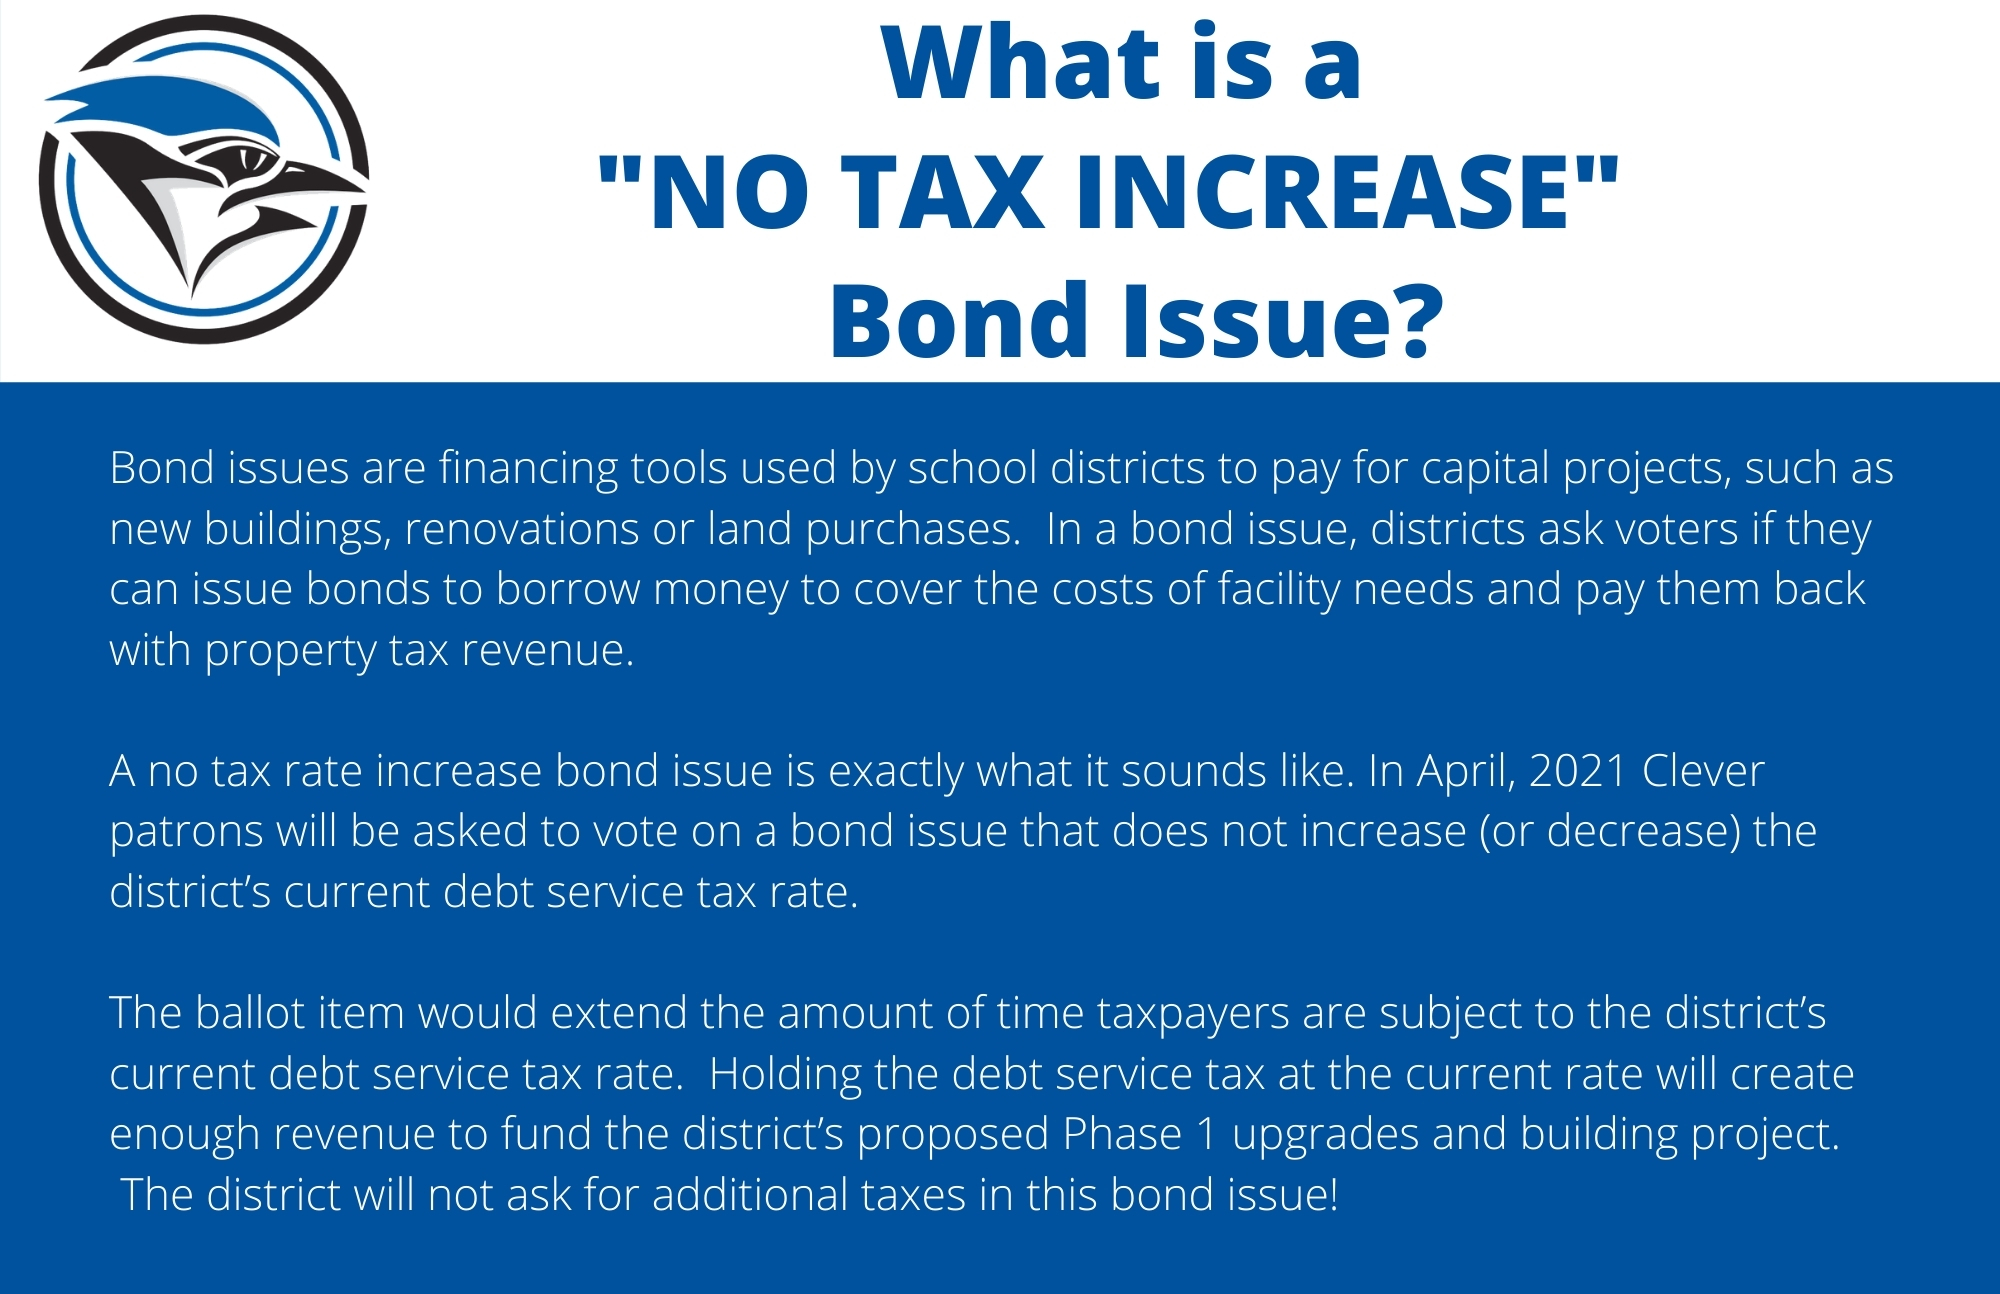 No Tax Increase Bond Issue